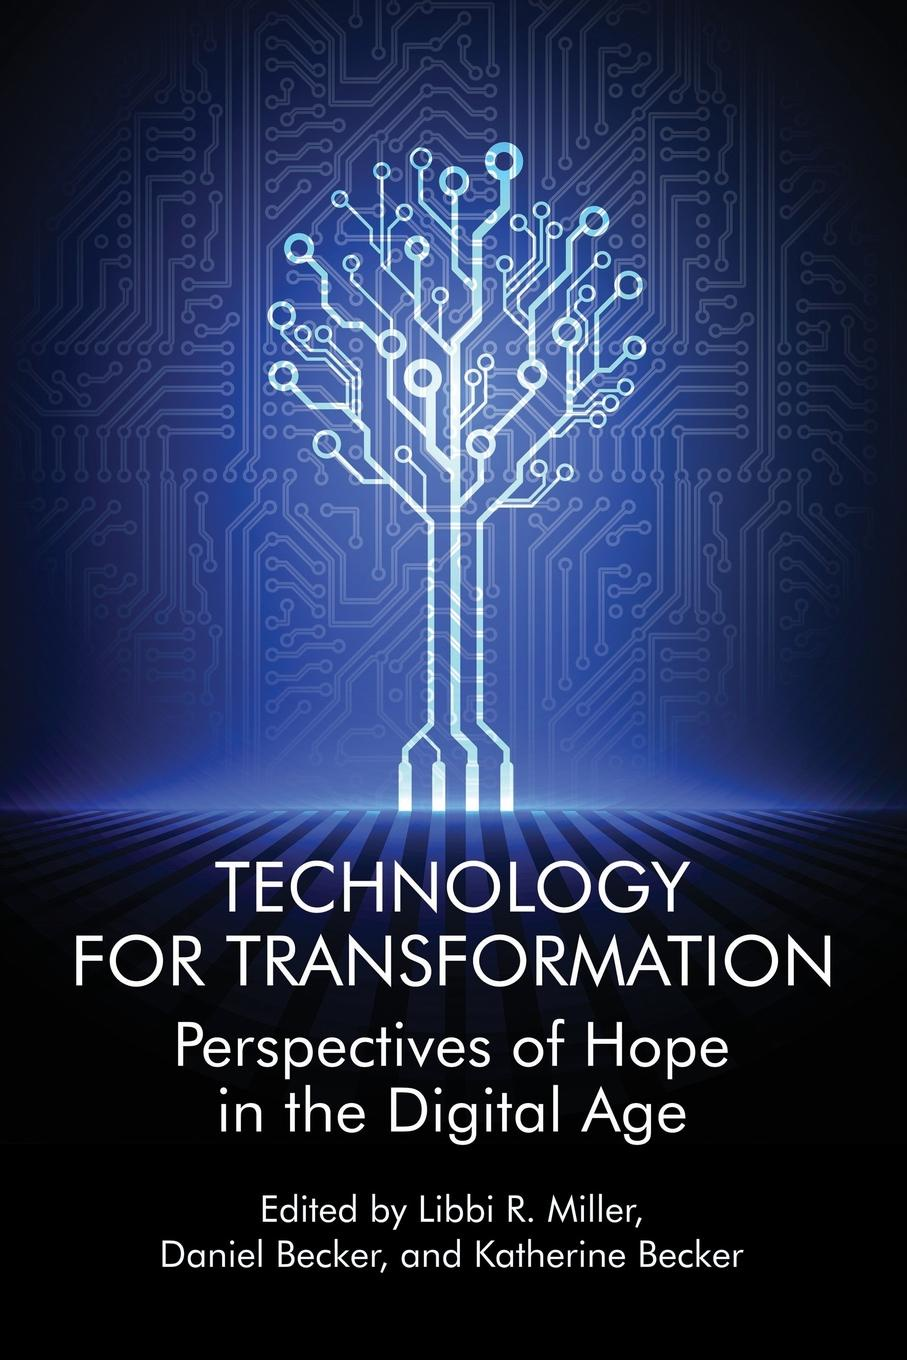 Technology For Transformation. Perspectives of Hope in the Digital Age contemporary uses of technology in k 12 physical education policy practice and advocacy